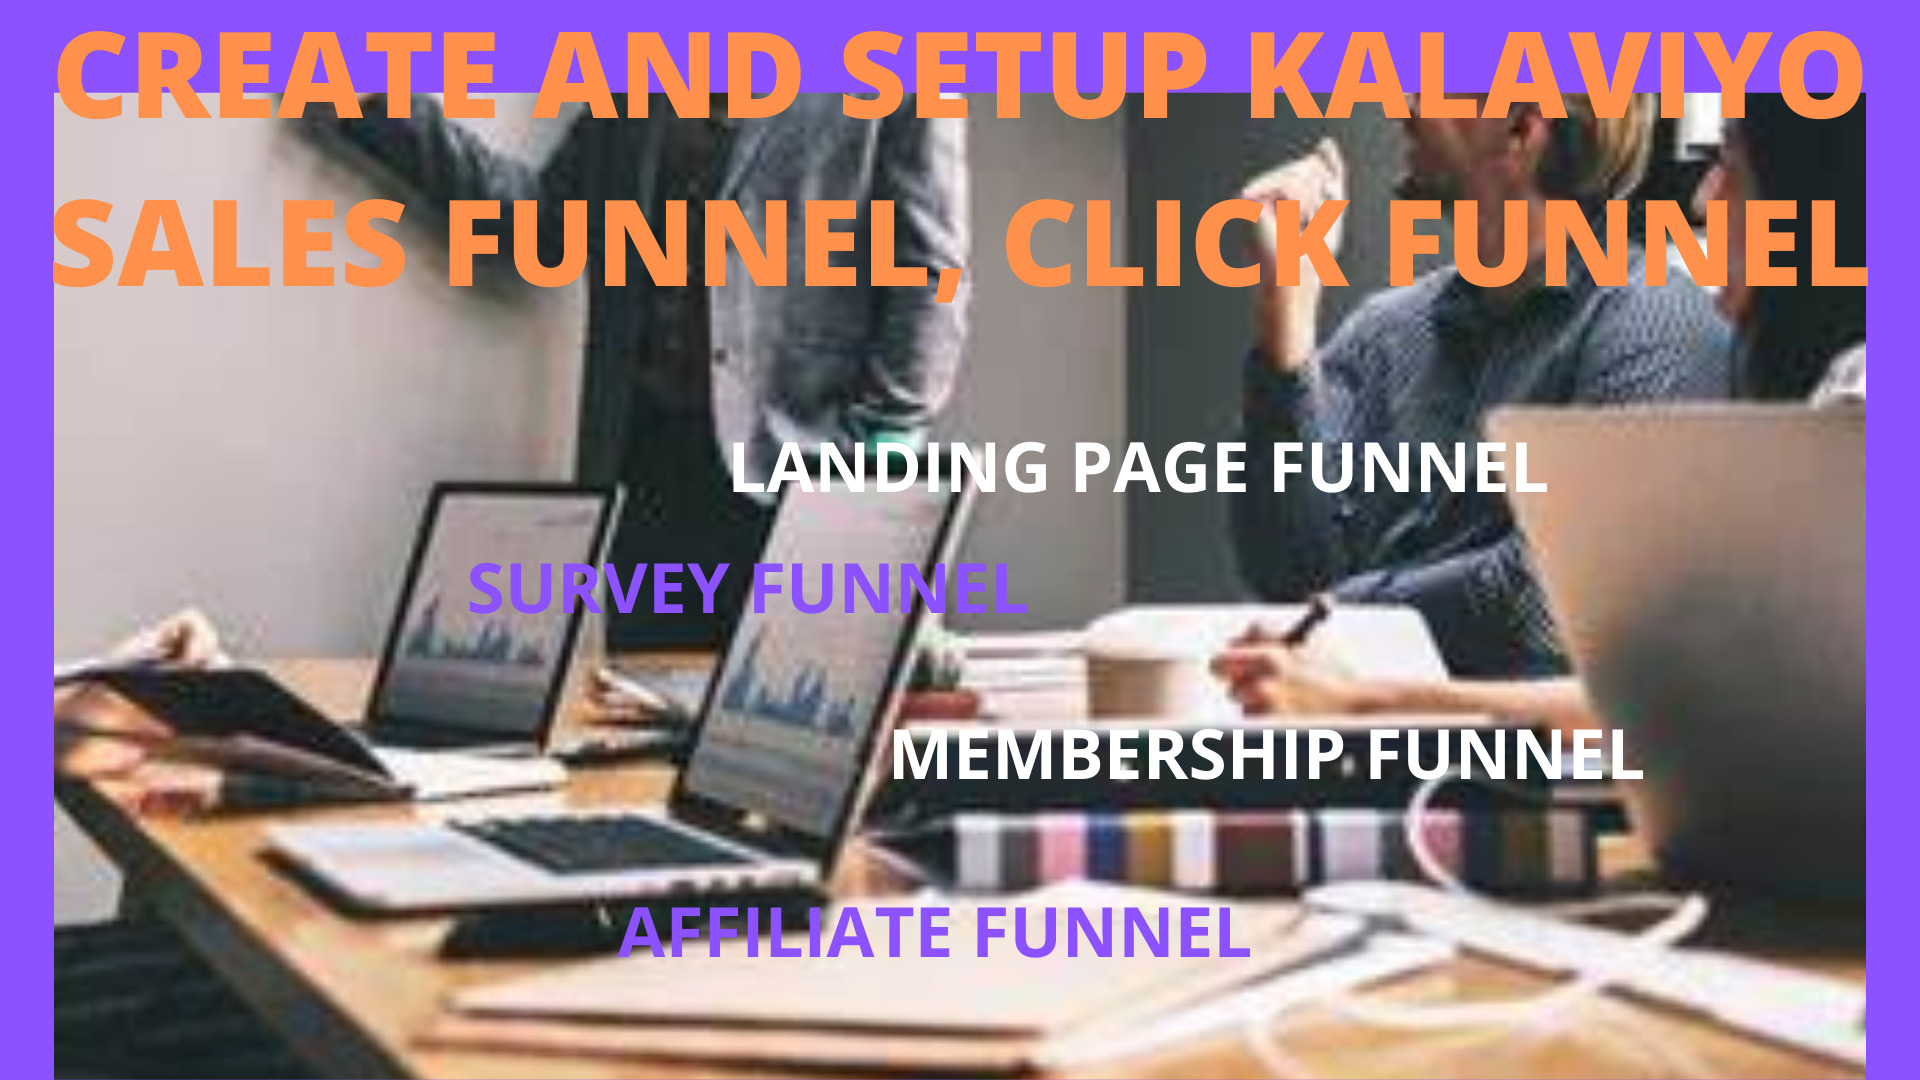 I will I will set up klaviyo sales funnel, click funnel, landing, FiverrBox